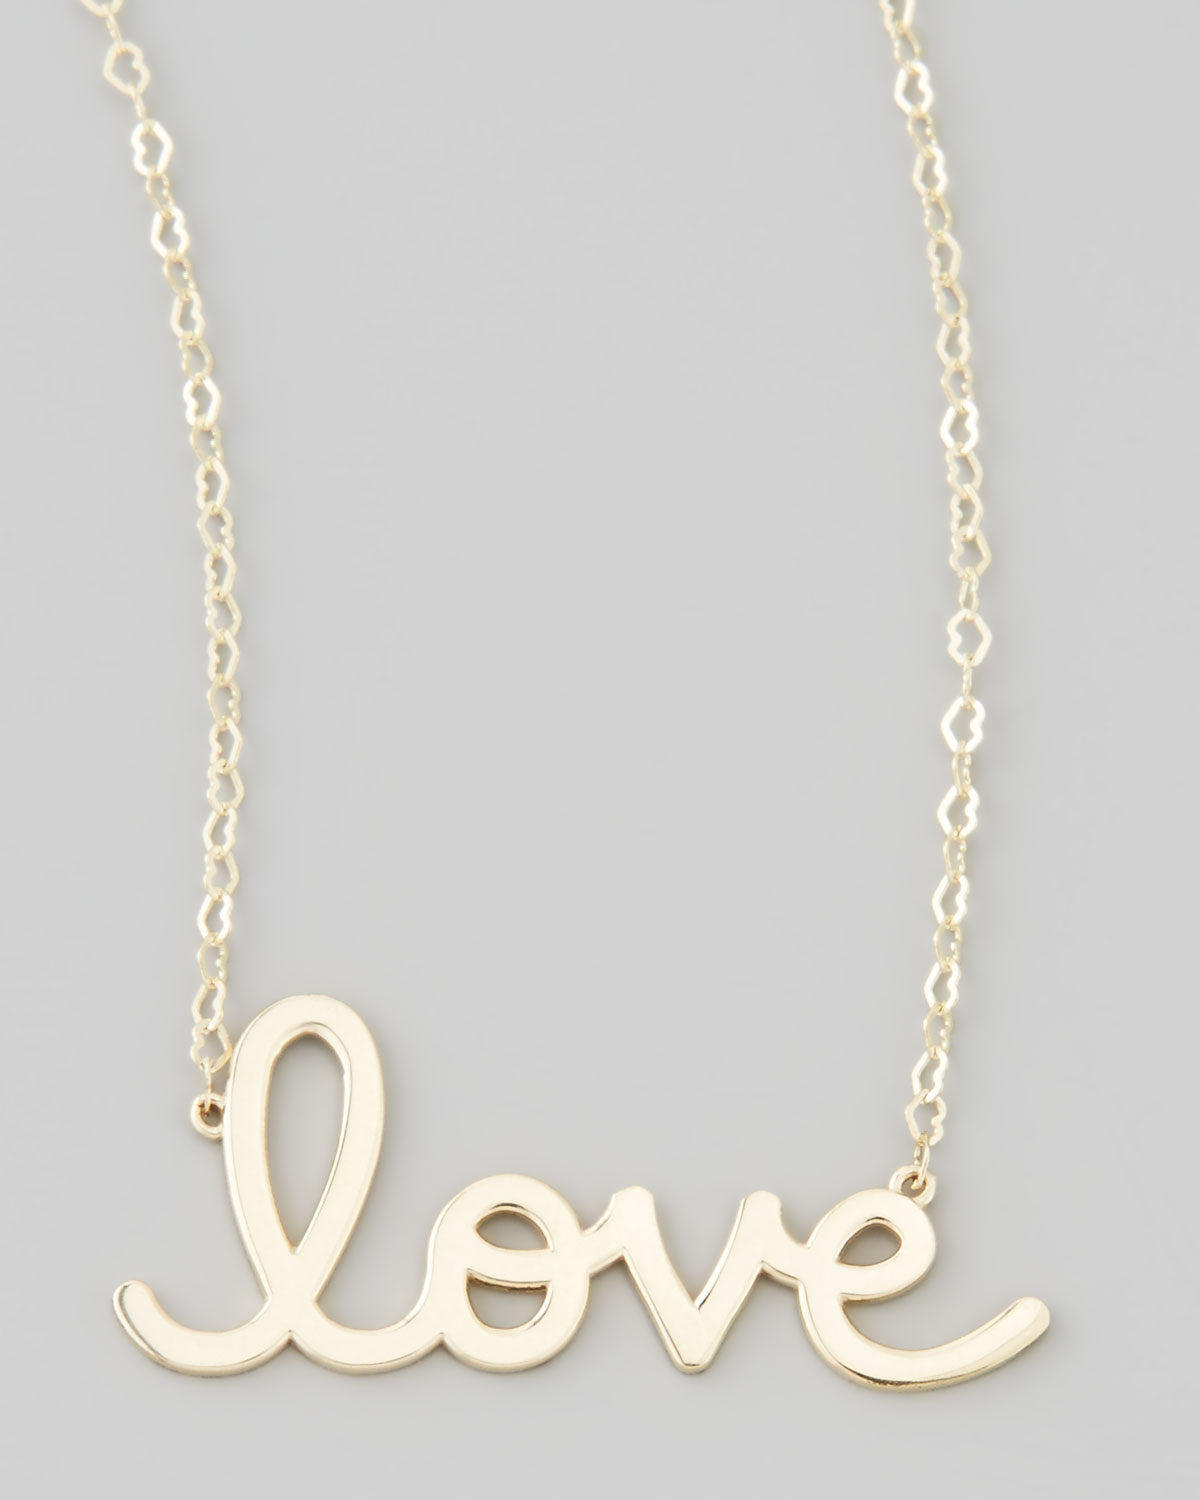 Lyst sydney evan gold love pendant necklace in metallic gallery aloadofball Image collections